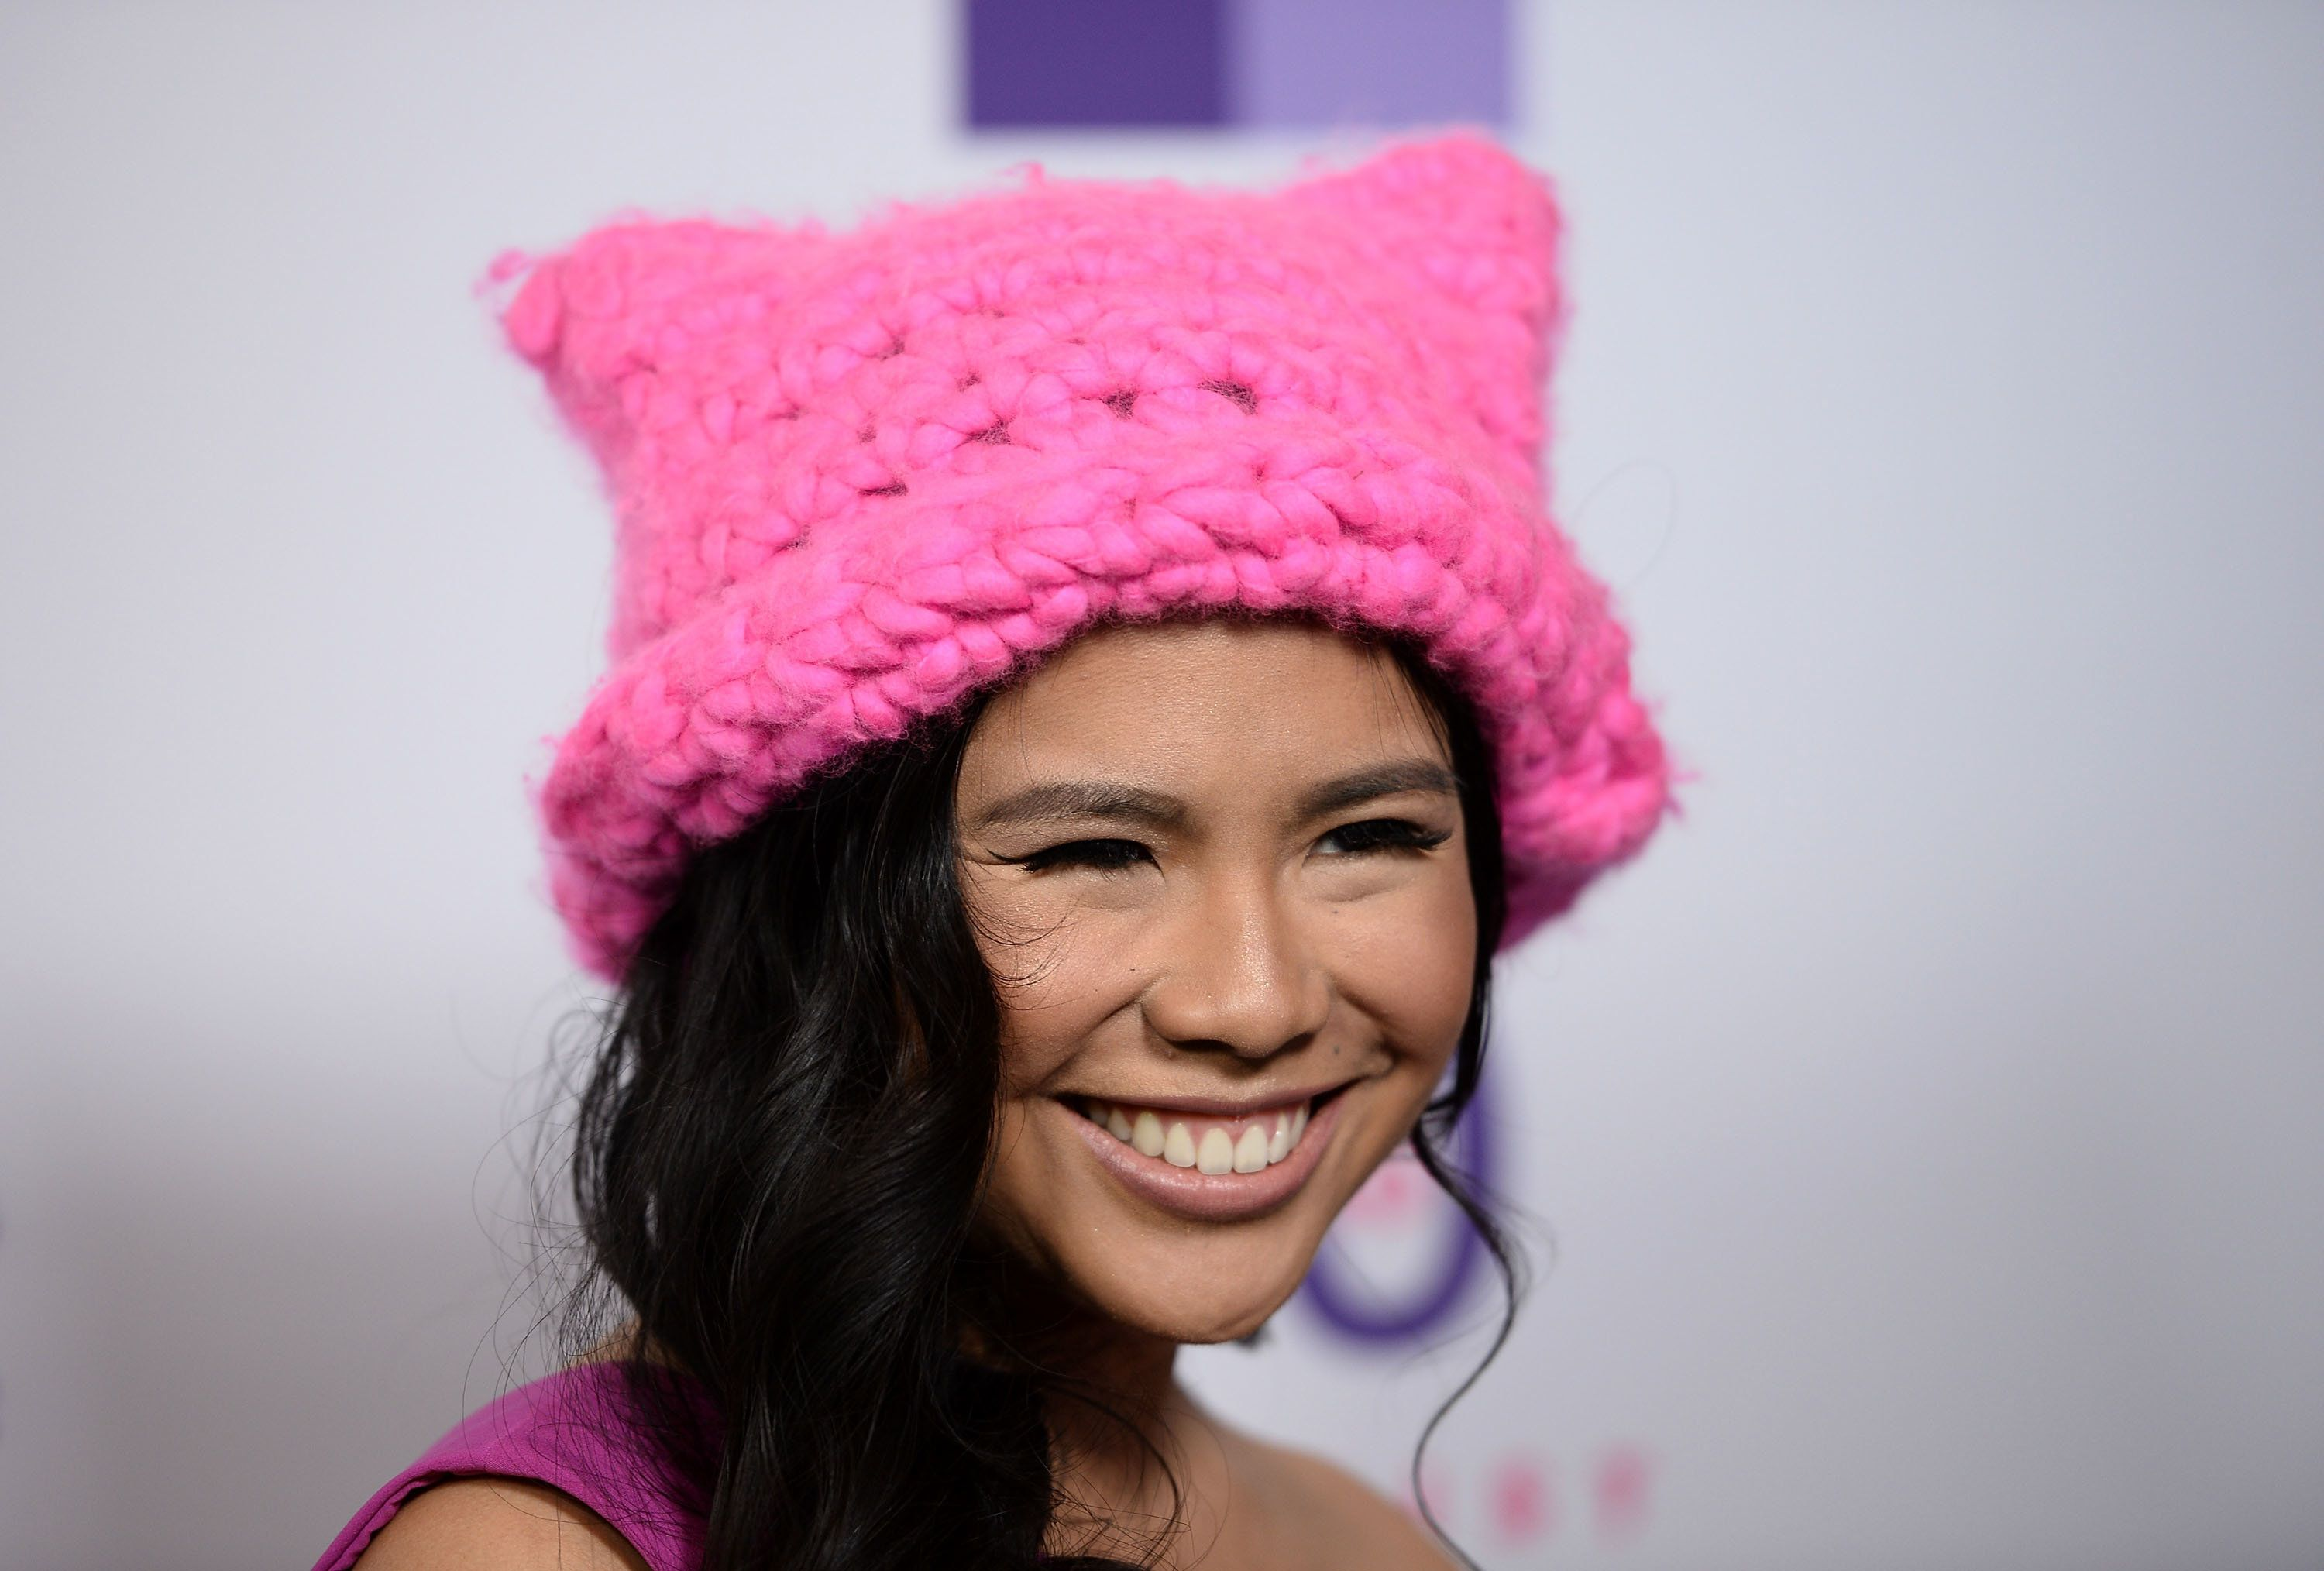 LOS ANGELES, CA - MAY 22:  The Pussyhat Project founder Krista Suh arrives at the Feminist Majority Foundation 30th Anniversary Celebration at the Directors Guild Of America on May 22, 2017 in Los Angeles, California.  (Photo by Amanda Edwards/WireImage)